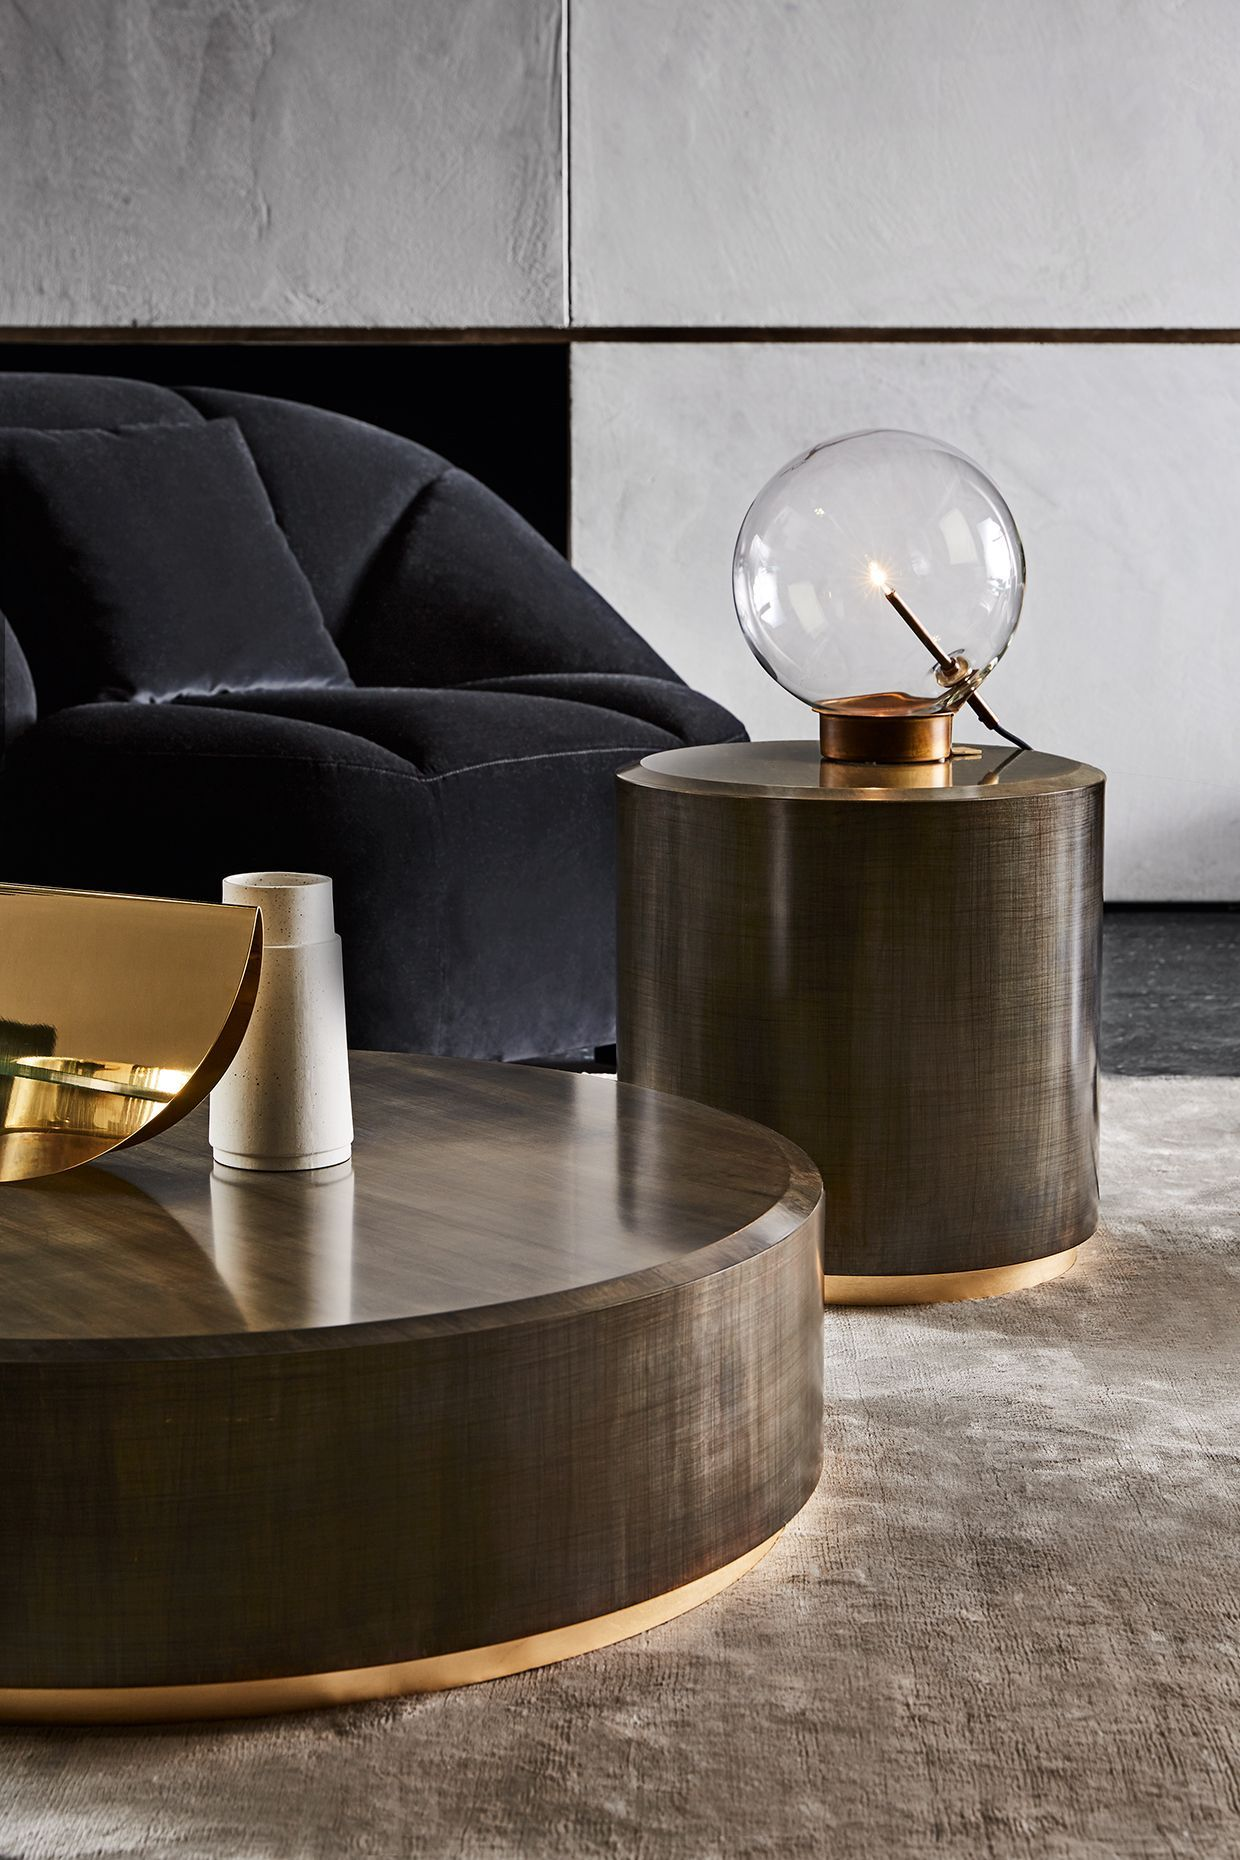 Best Luxury Center Tables You Will Fall In Love With Best Decor For Your Home Round Wooden Coffee Table Table Lamp Design Table Lamp Wood [ 1860 x 1240 Pixel ]